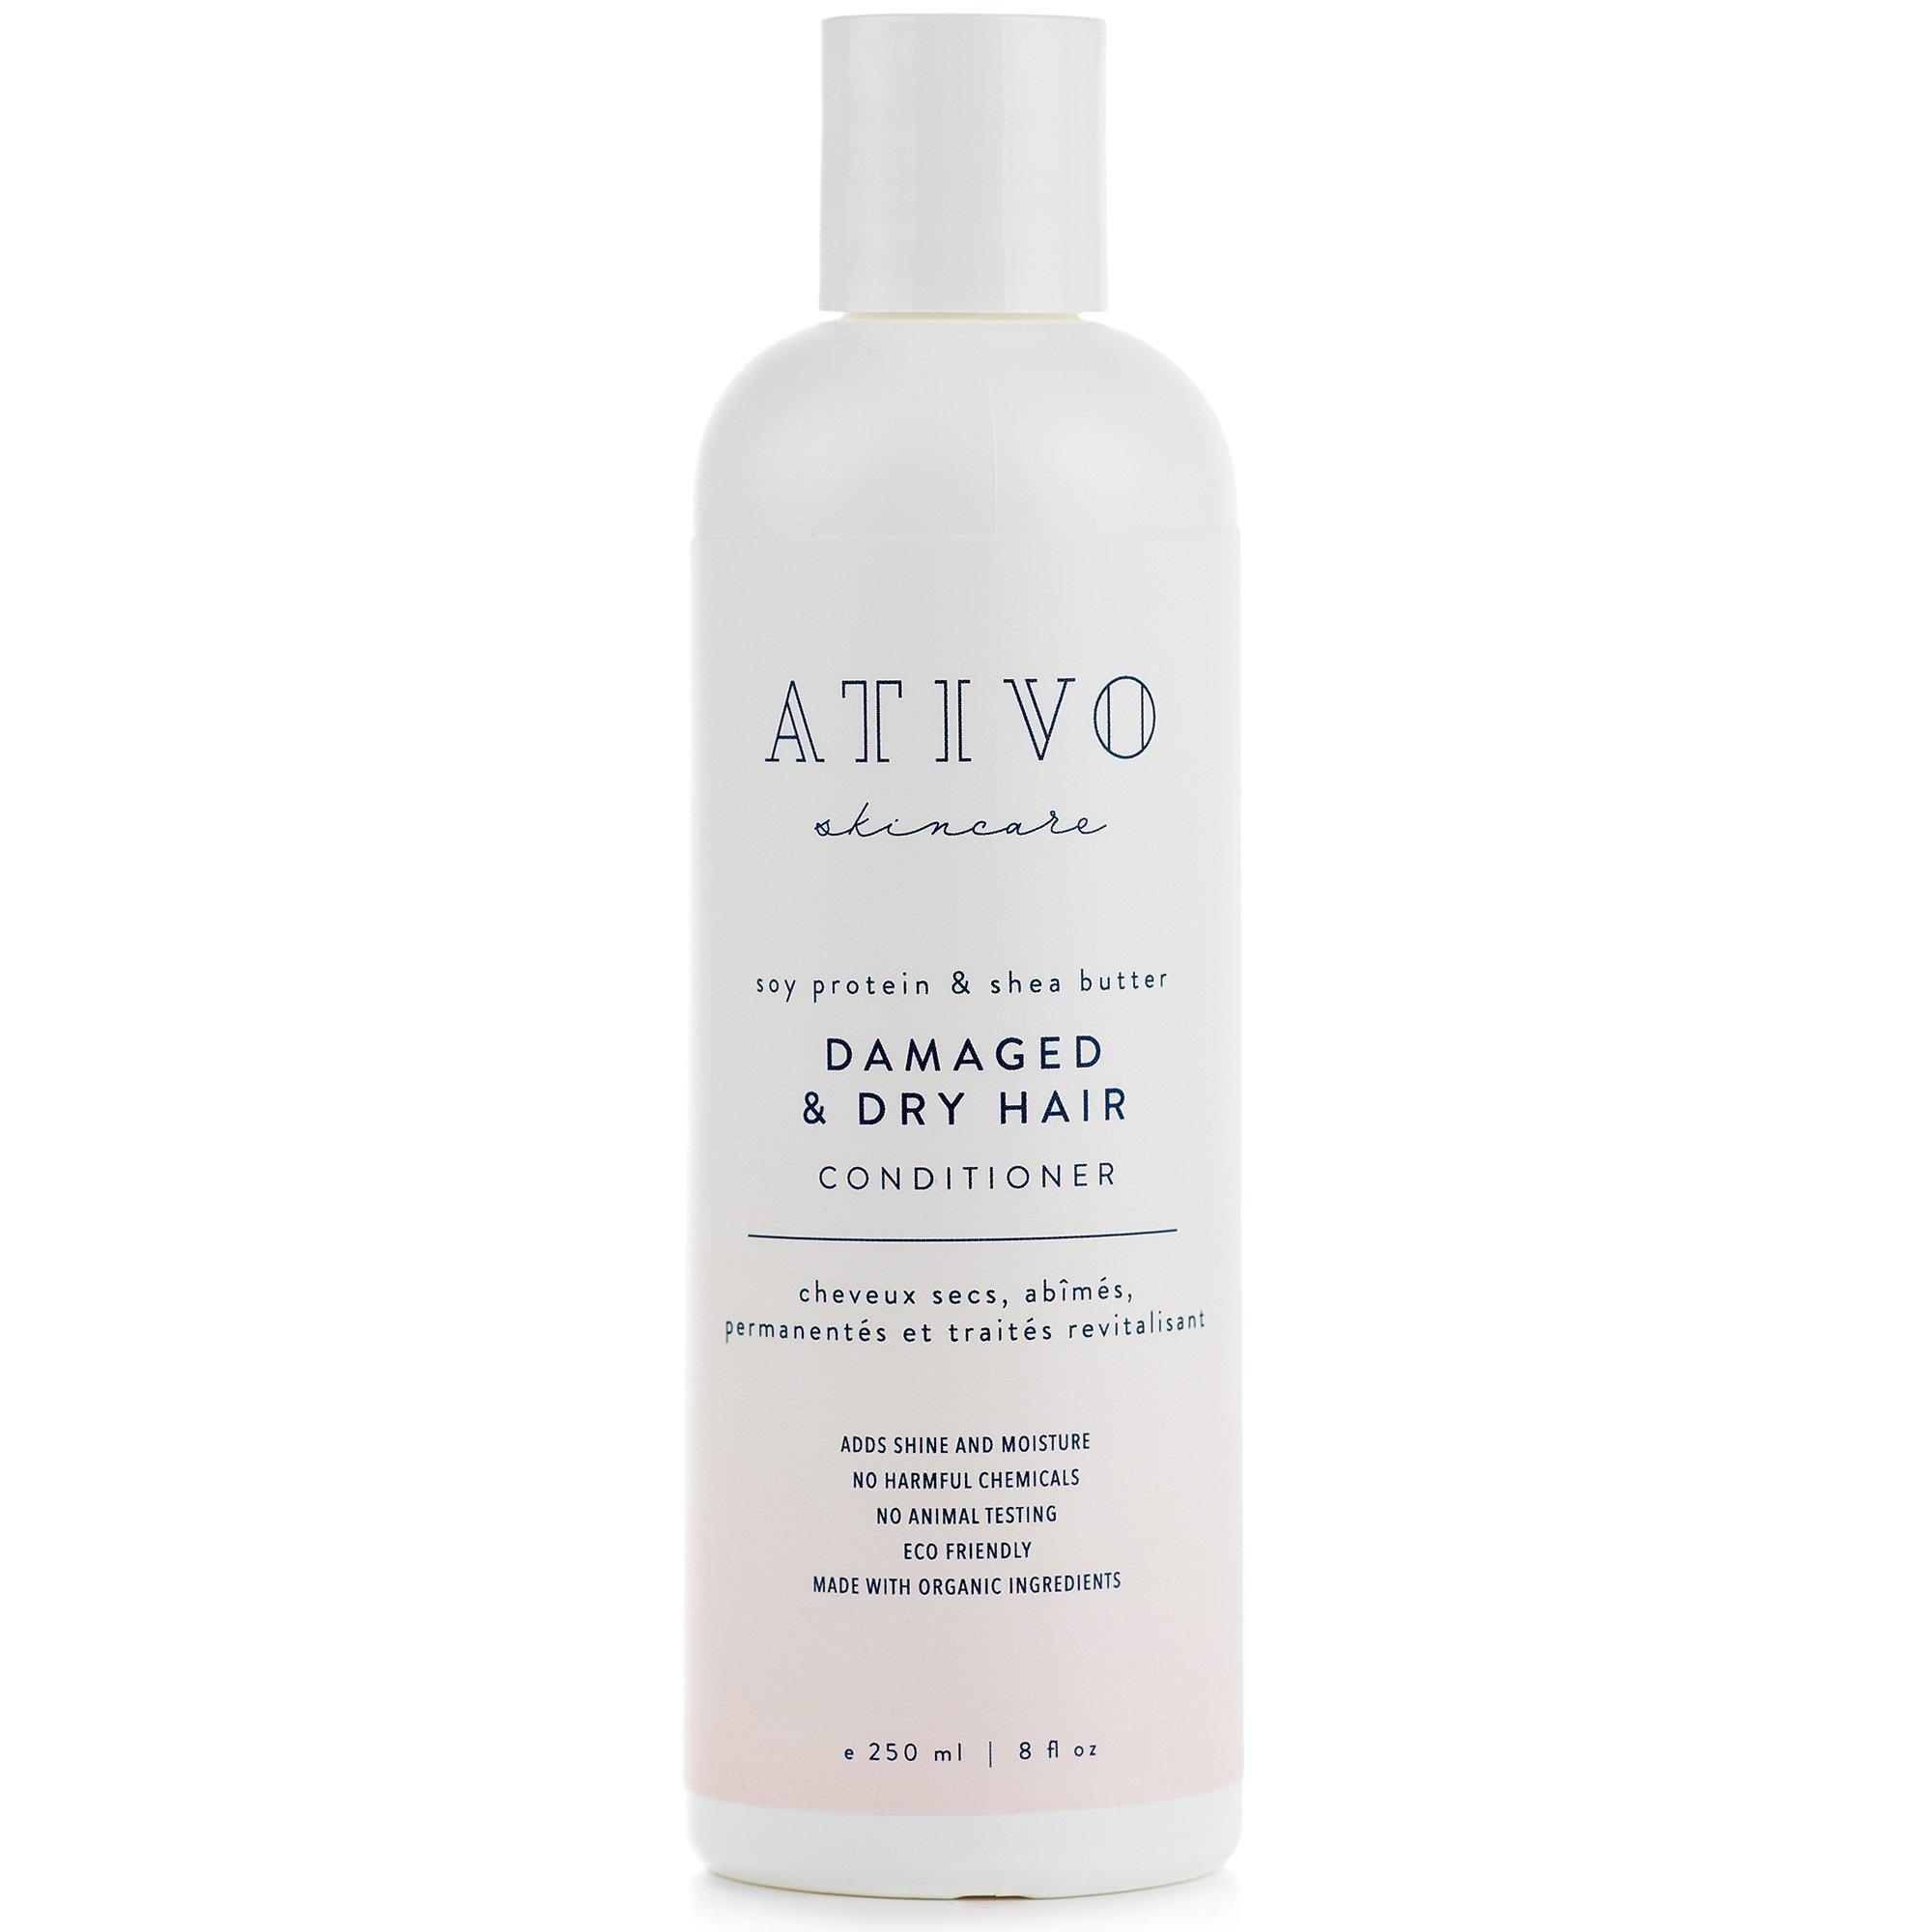 Damaged & Dry Hair Conditioner